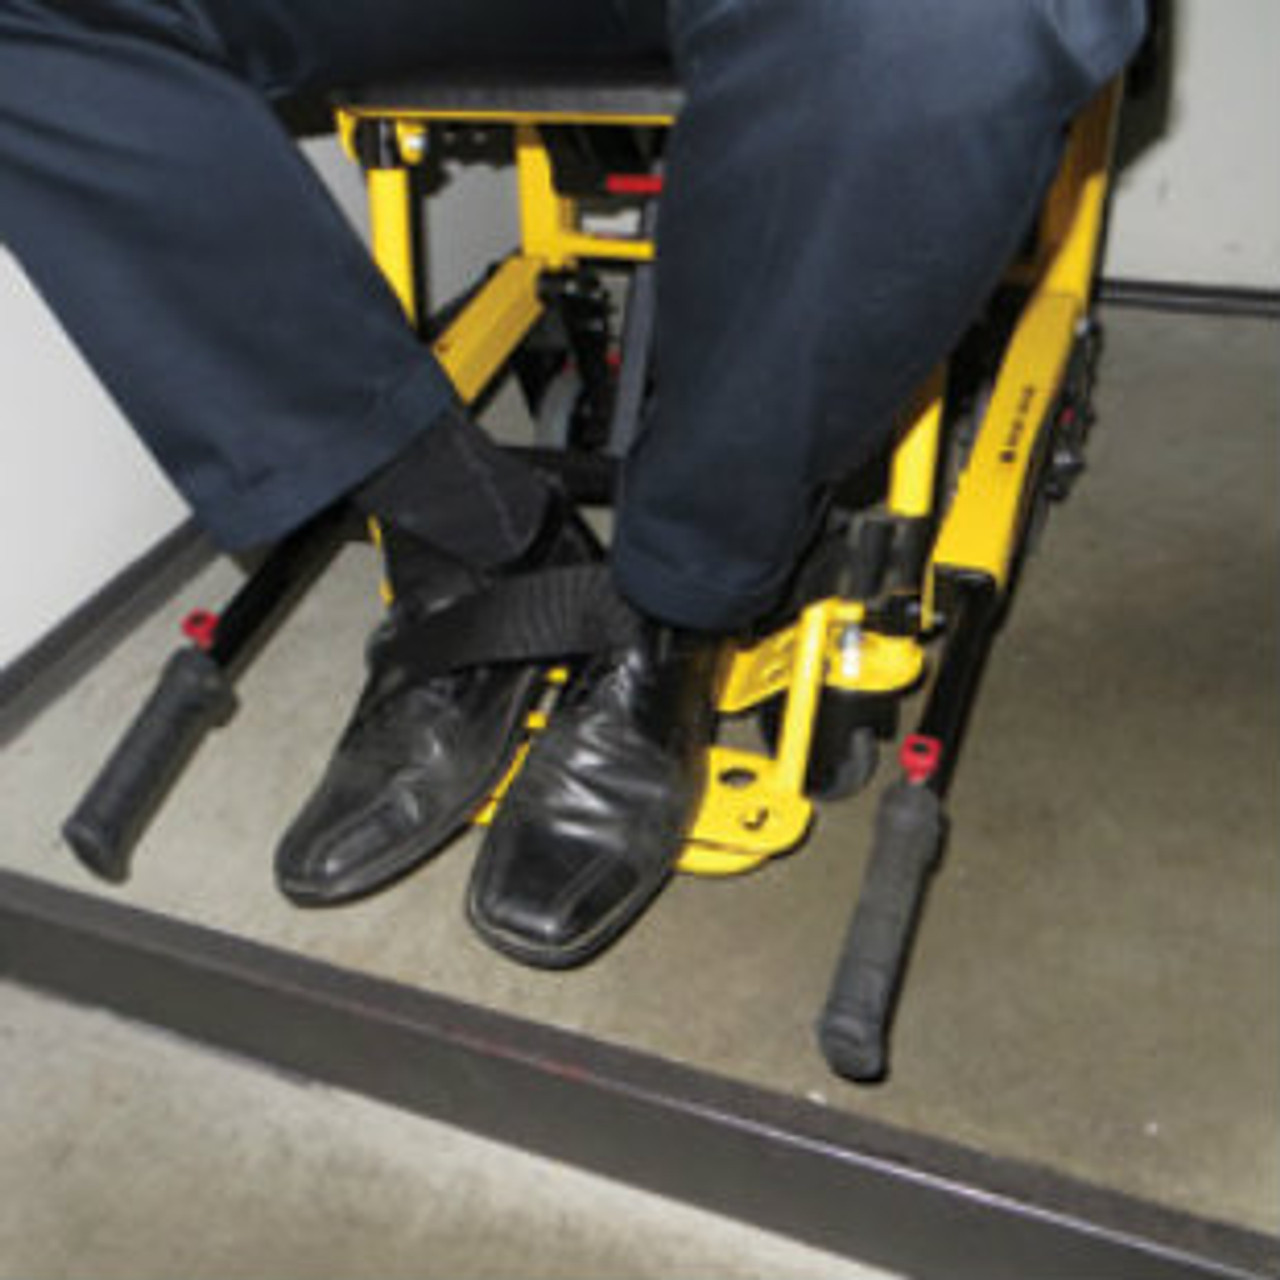 Ankle Strap for Stryker Stair Chair